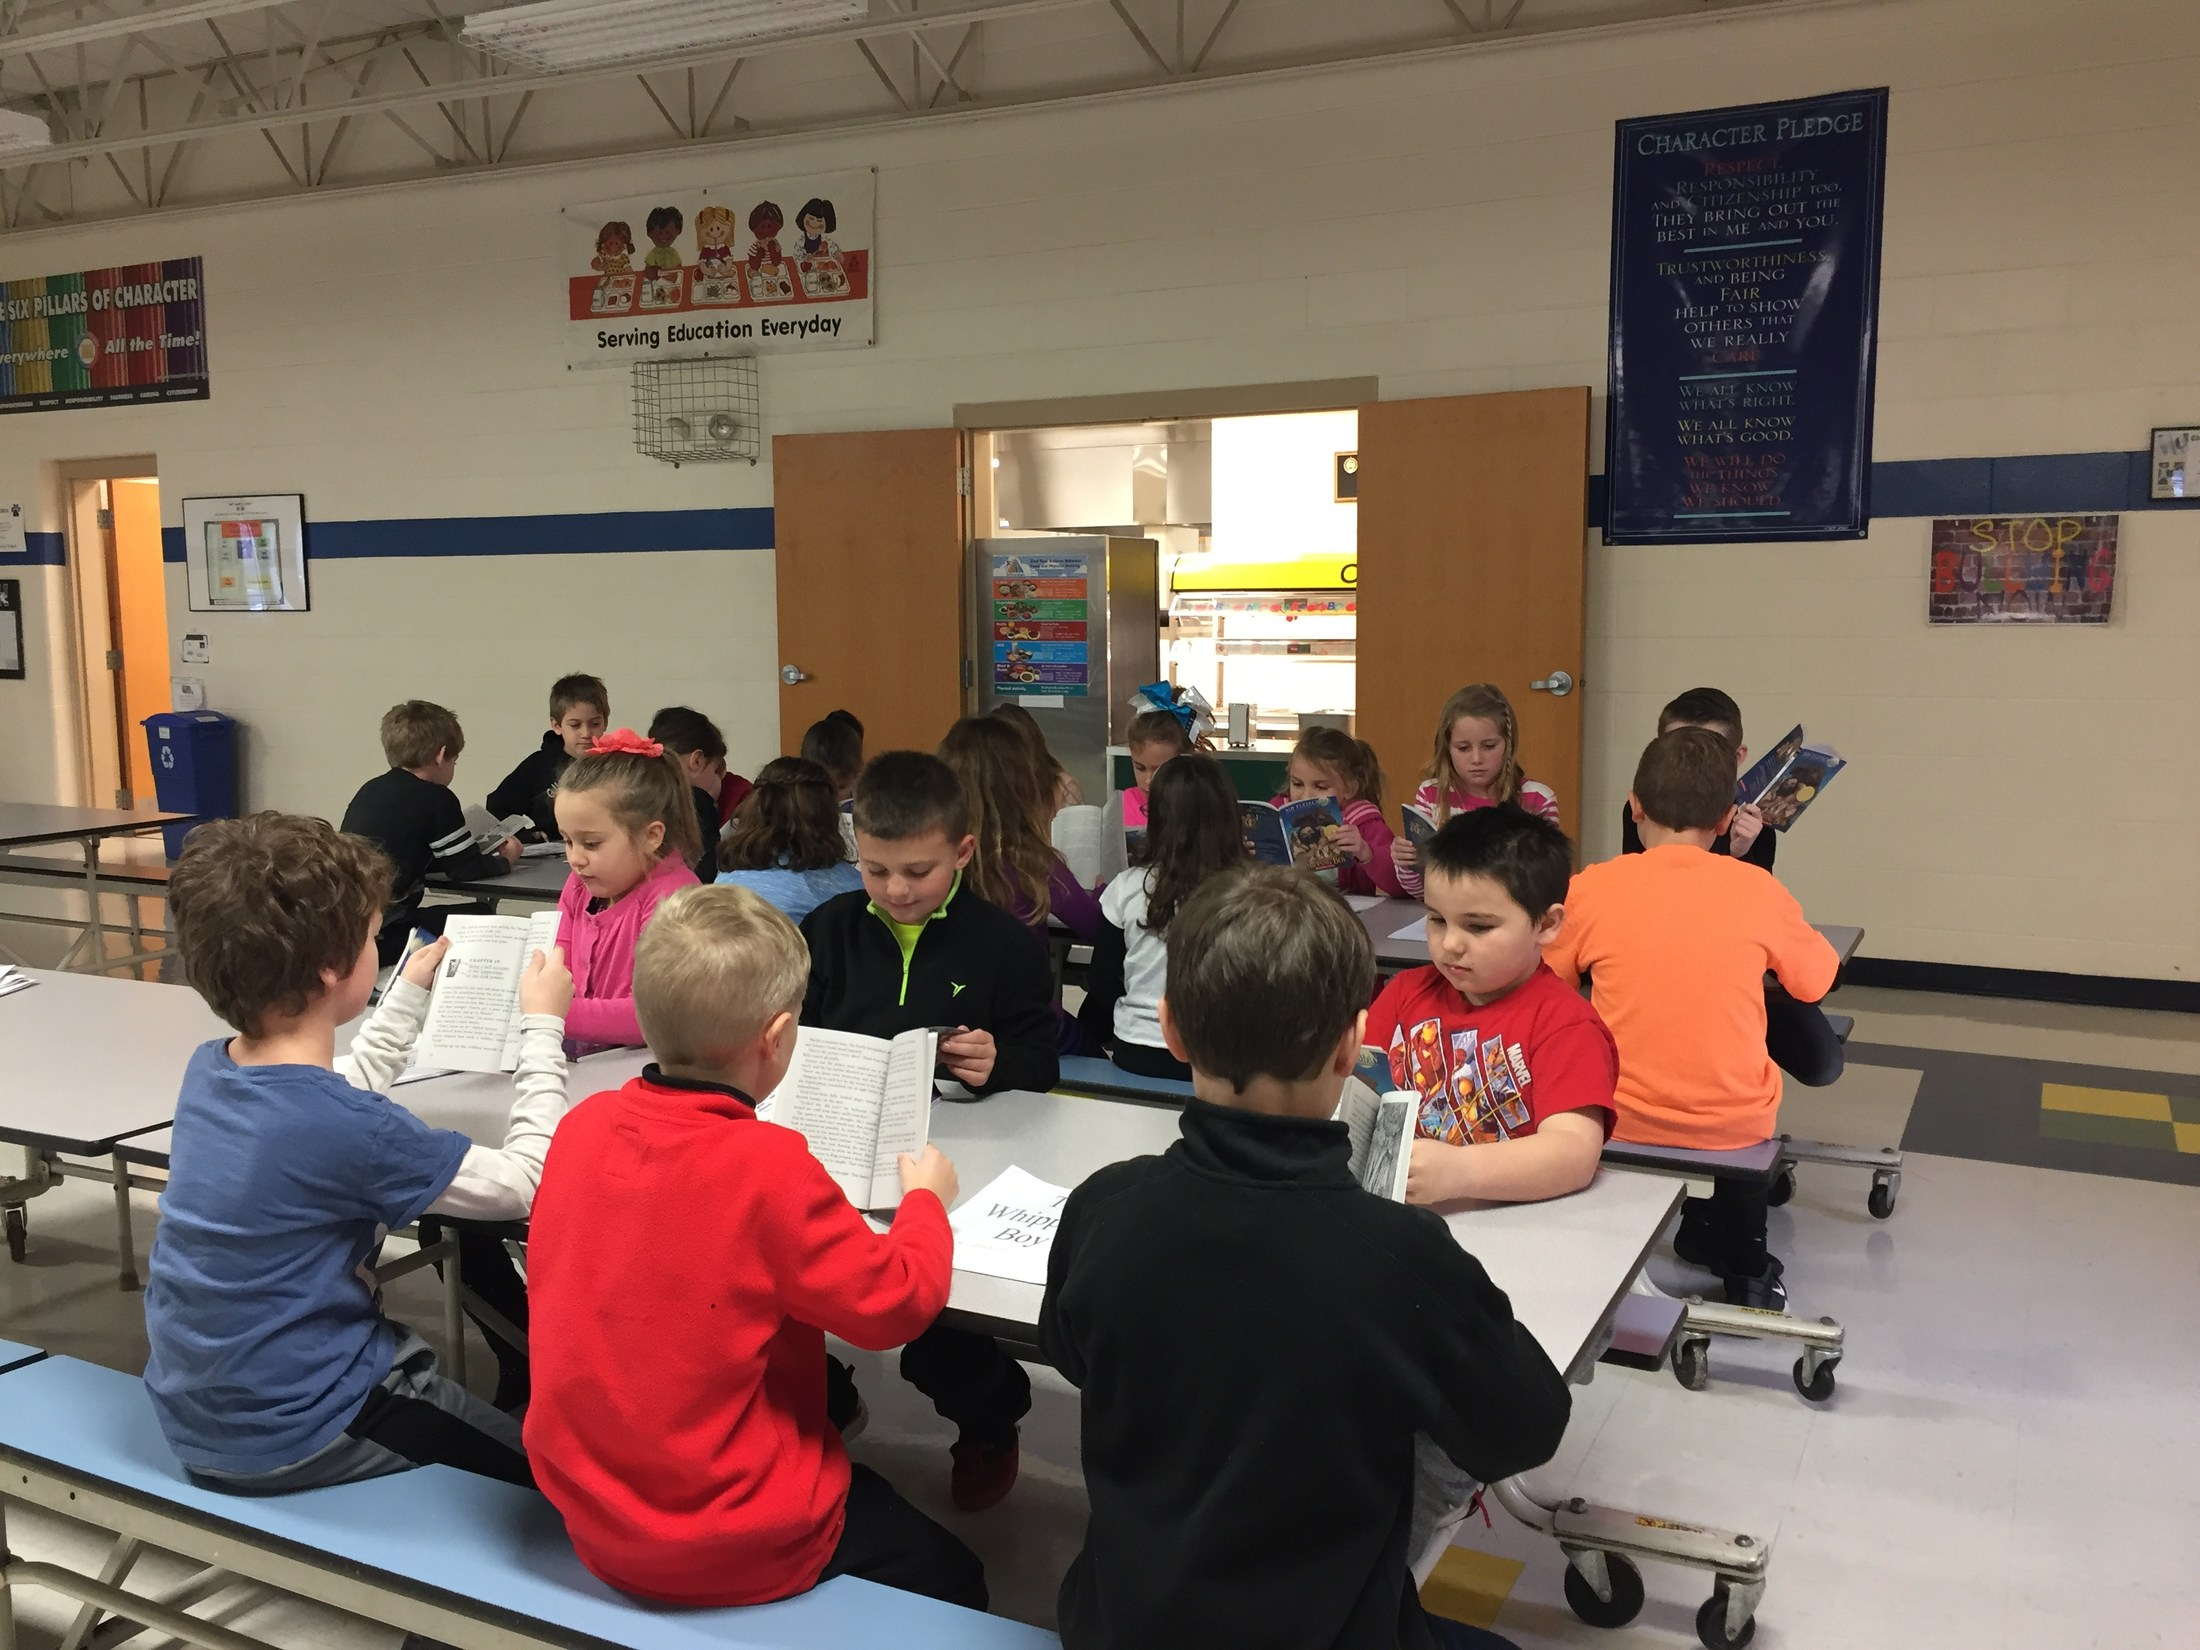 Crosby Elementary RtI groups having class in the Cafeteria